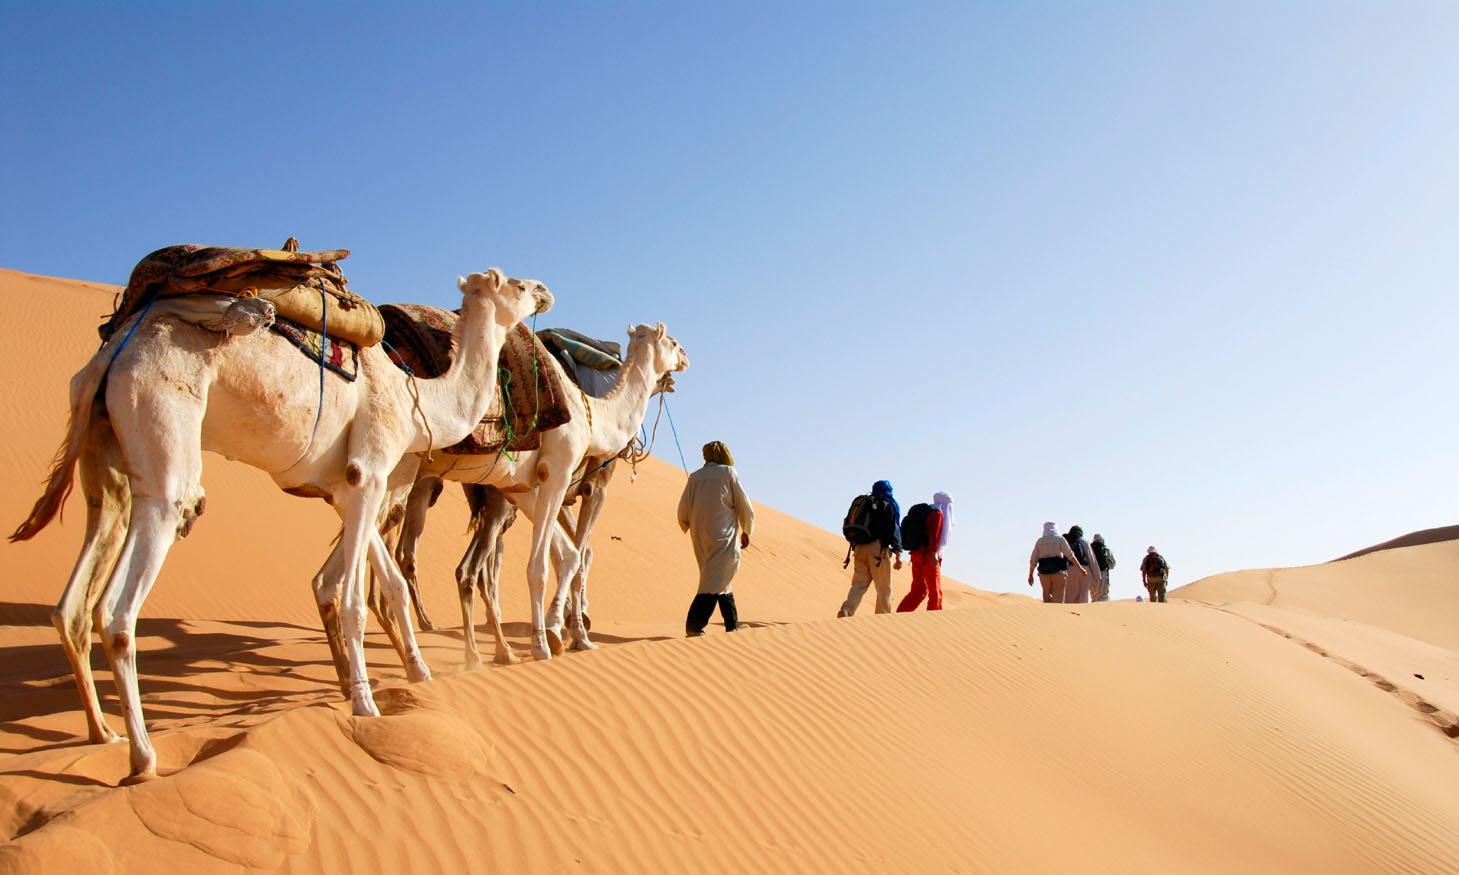 Share your experiences of desert trips for the chance of winning a £200 hotel voucher